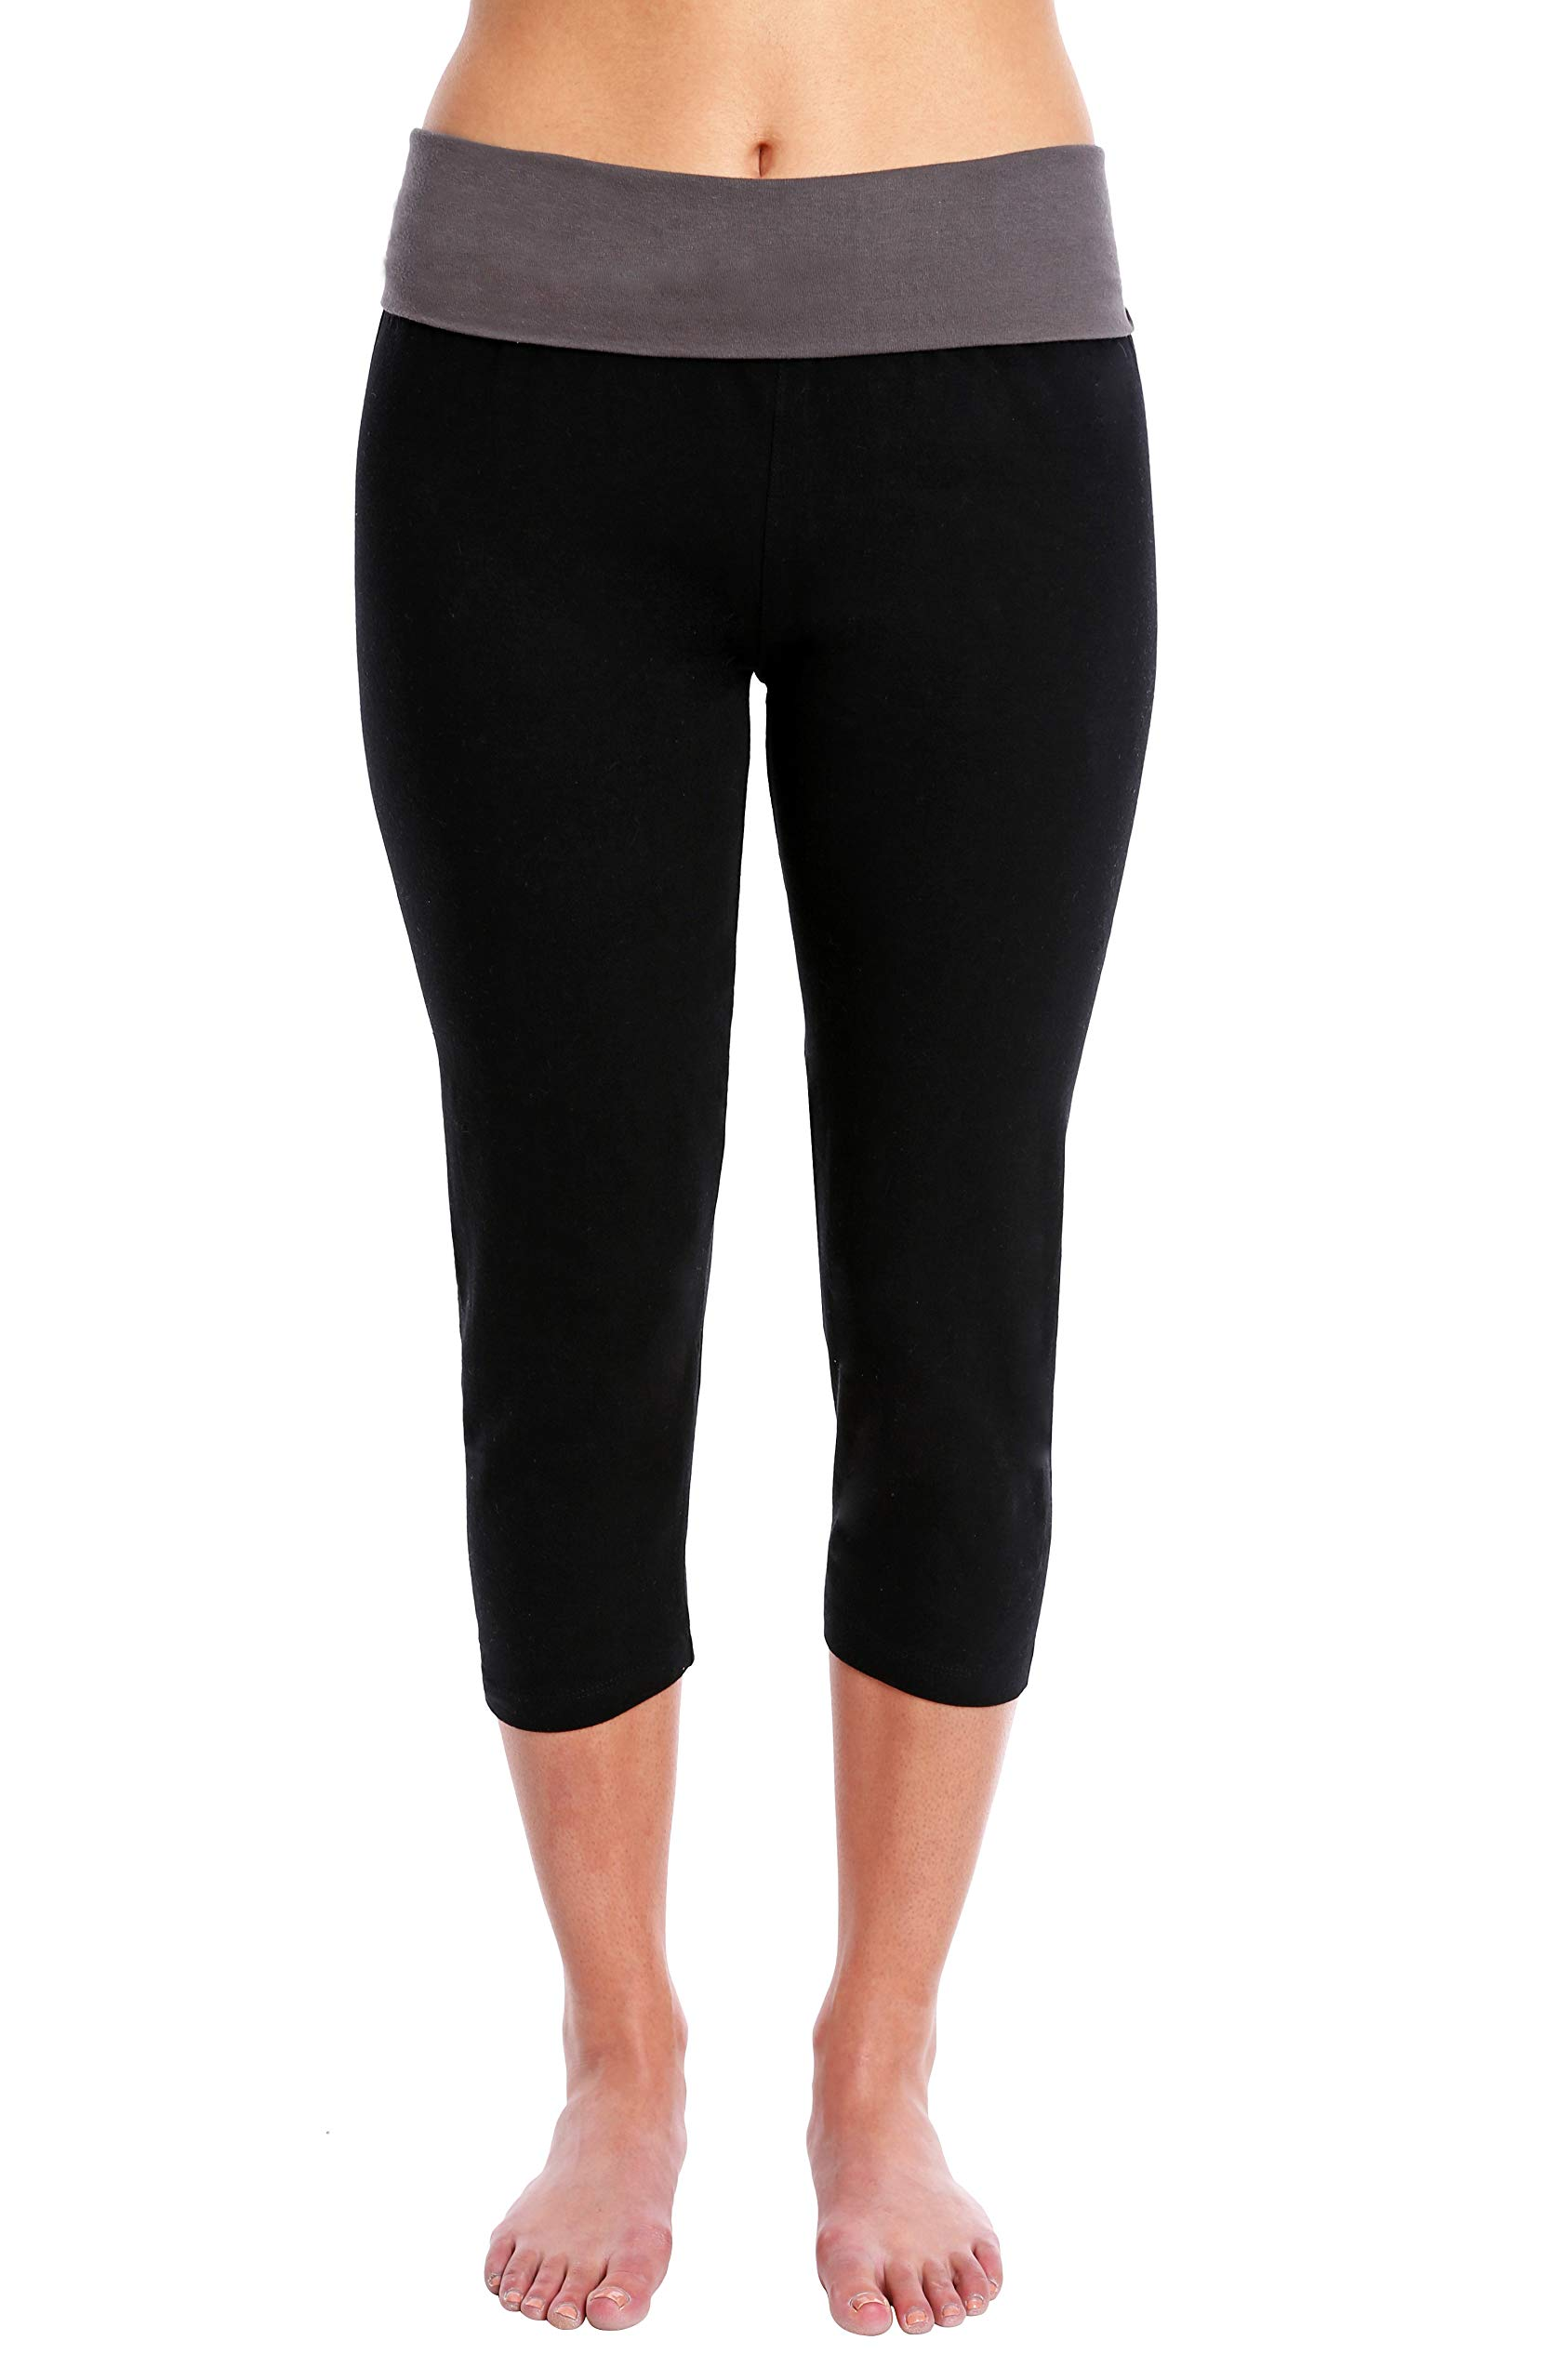 DISHANG Womens Joggers Pants with Side Stripes Comfy Lightweight Running Active Pant Workout Fleece Sweatpants